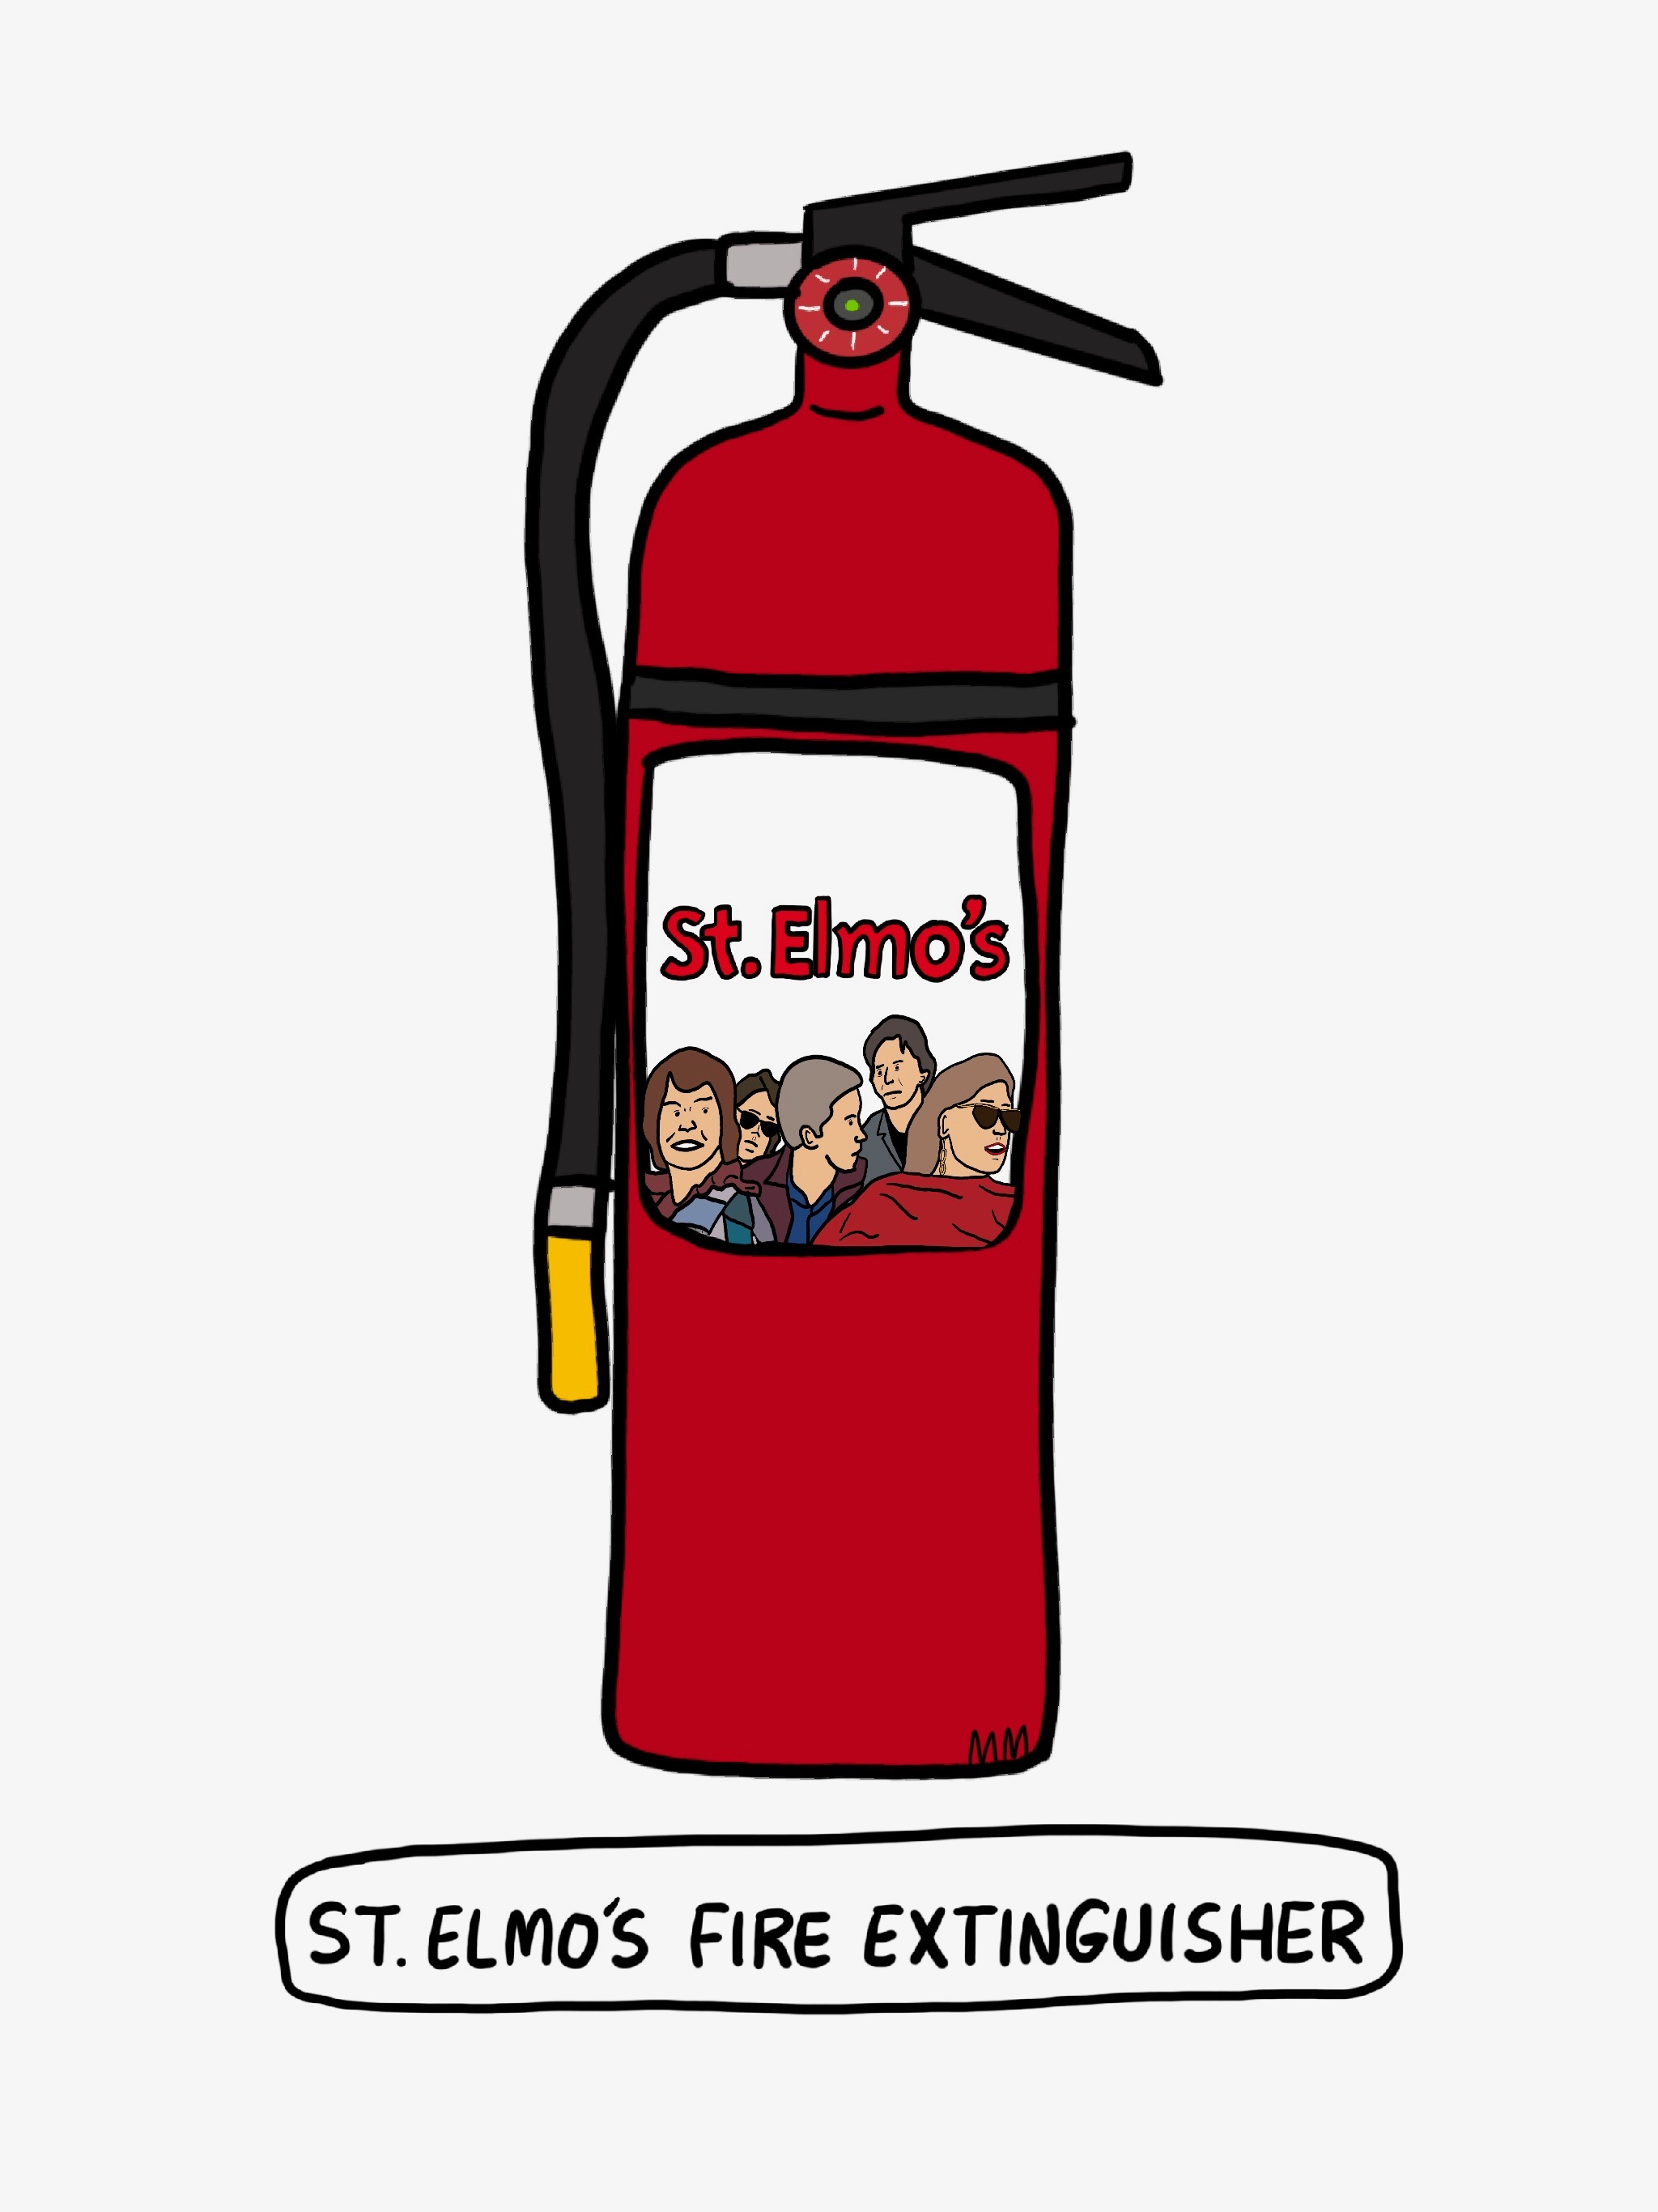 St. Elmo's Fire Extinguisher